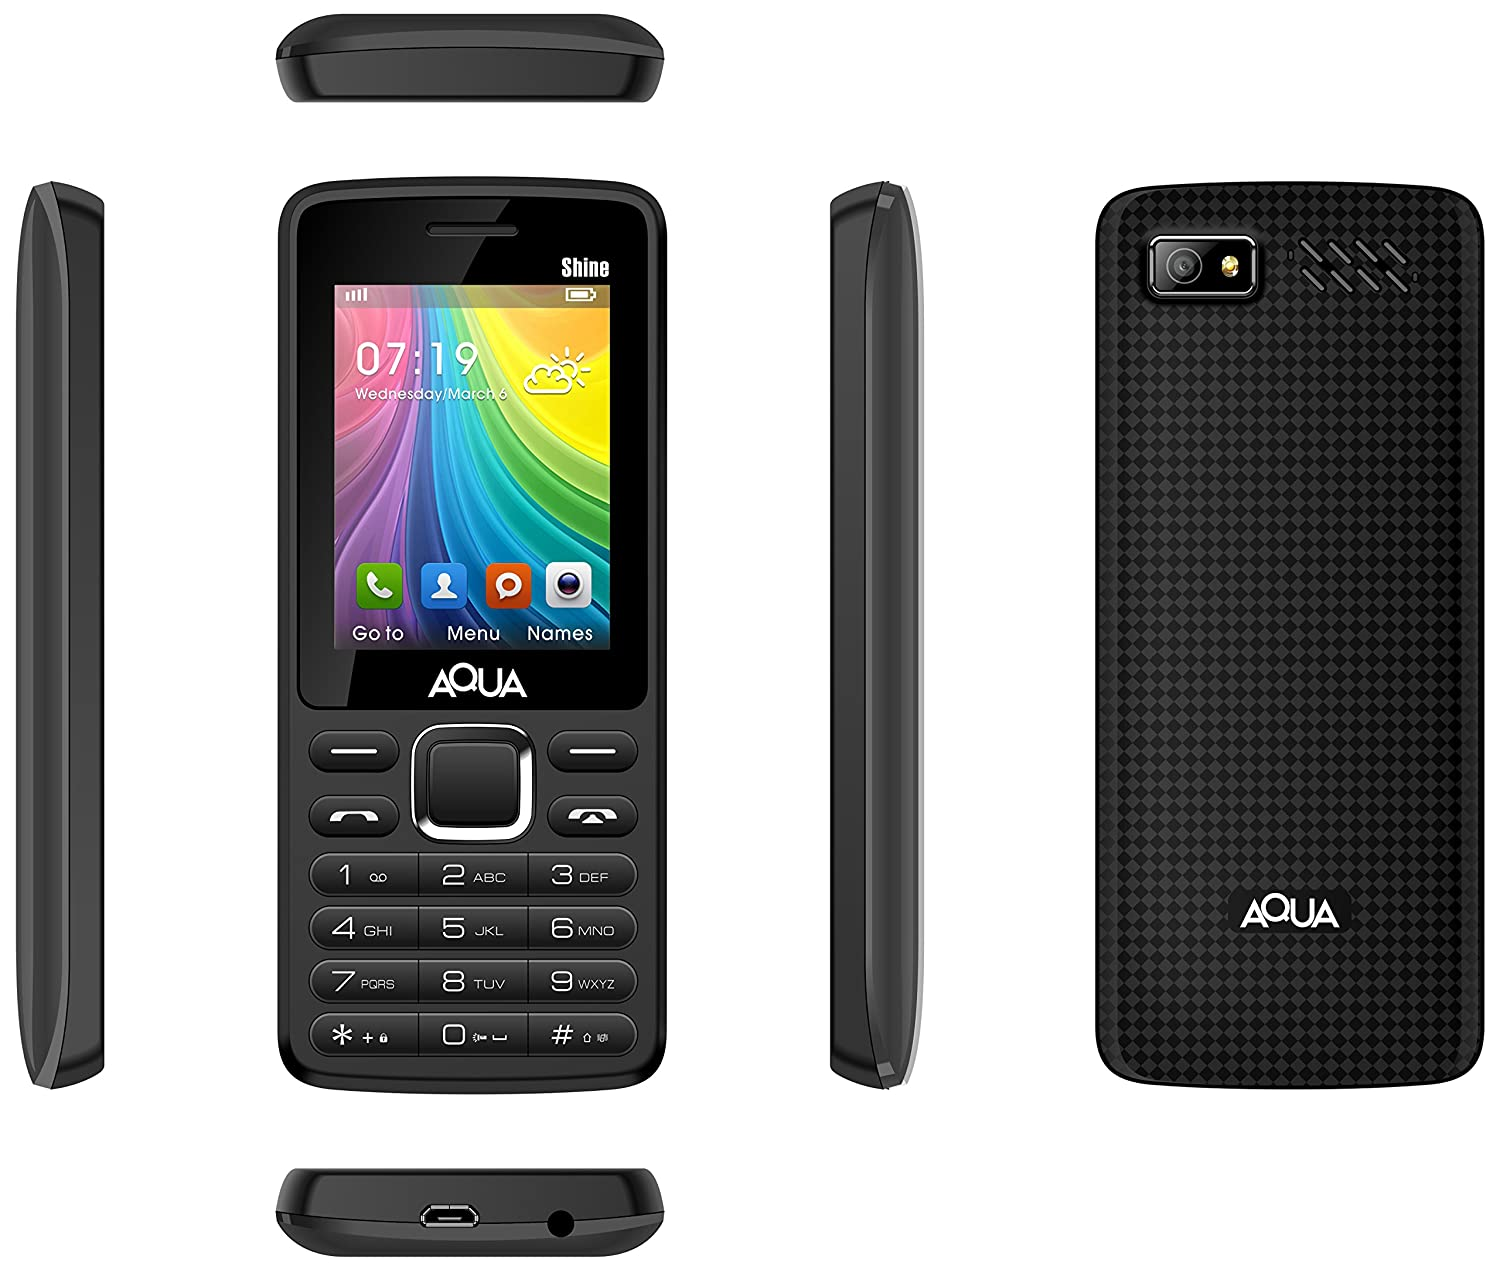 24007695f47 Aqua Shine - 2100 mAh Battery - Dual SIM Basic Mobile Phone - Black  Amazon. in  Electronics